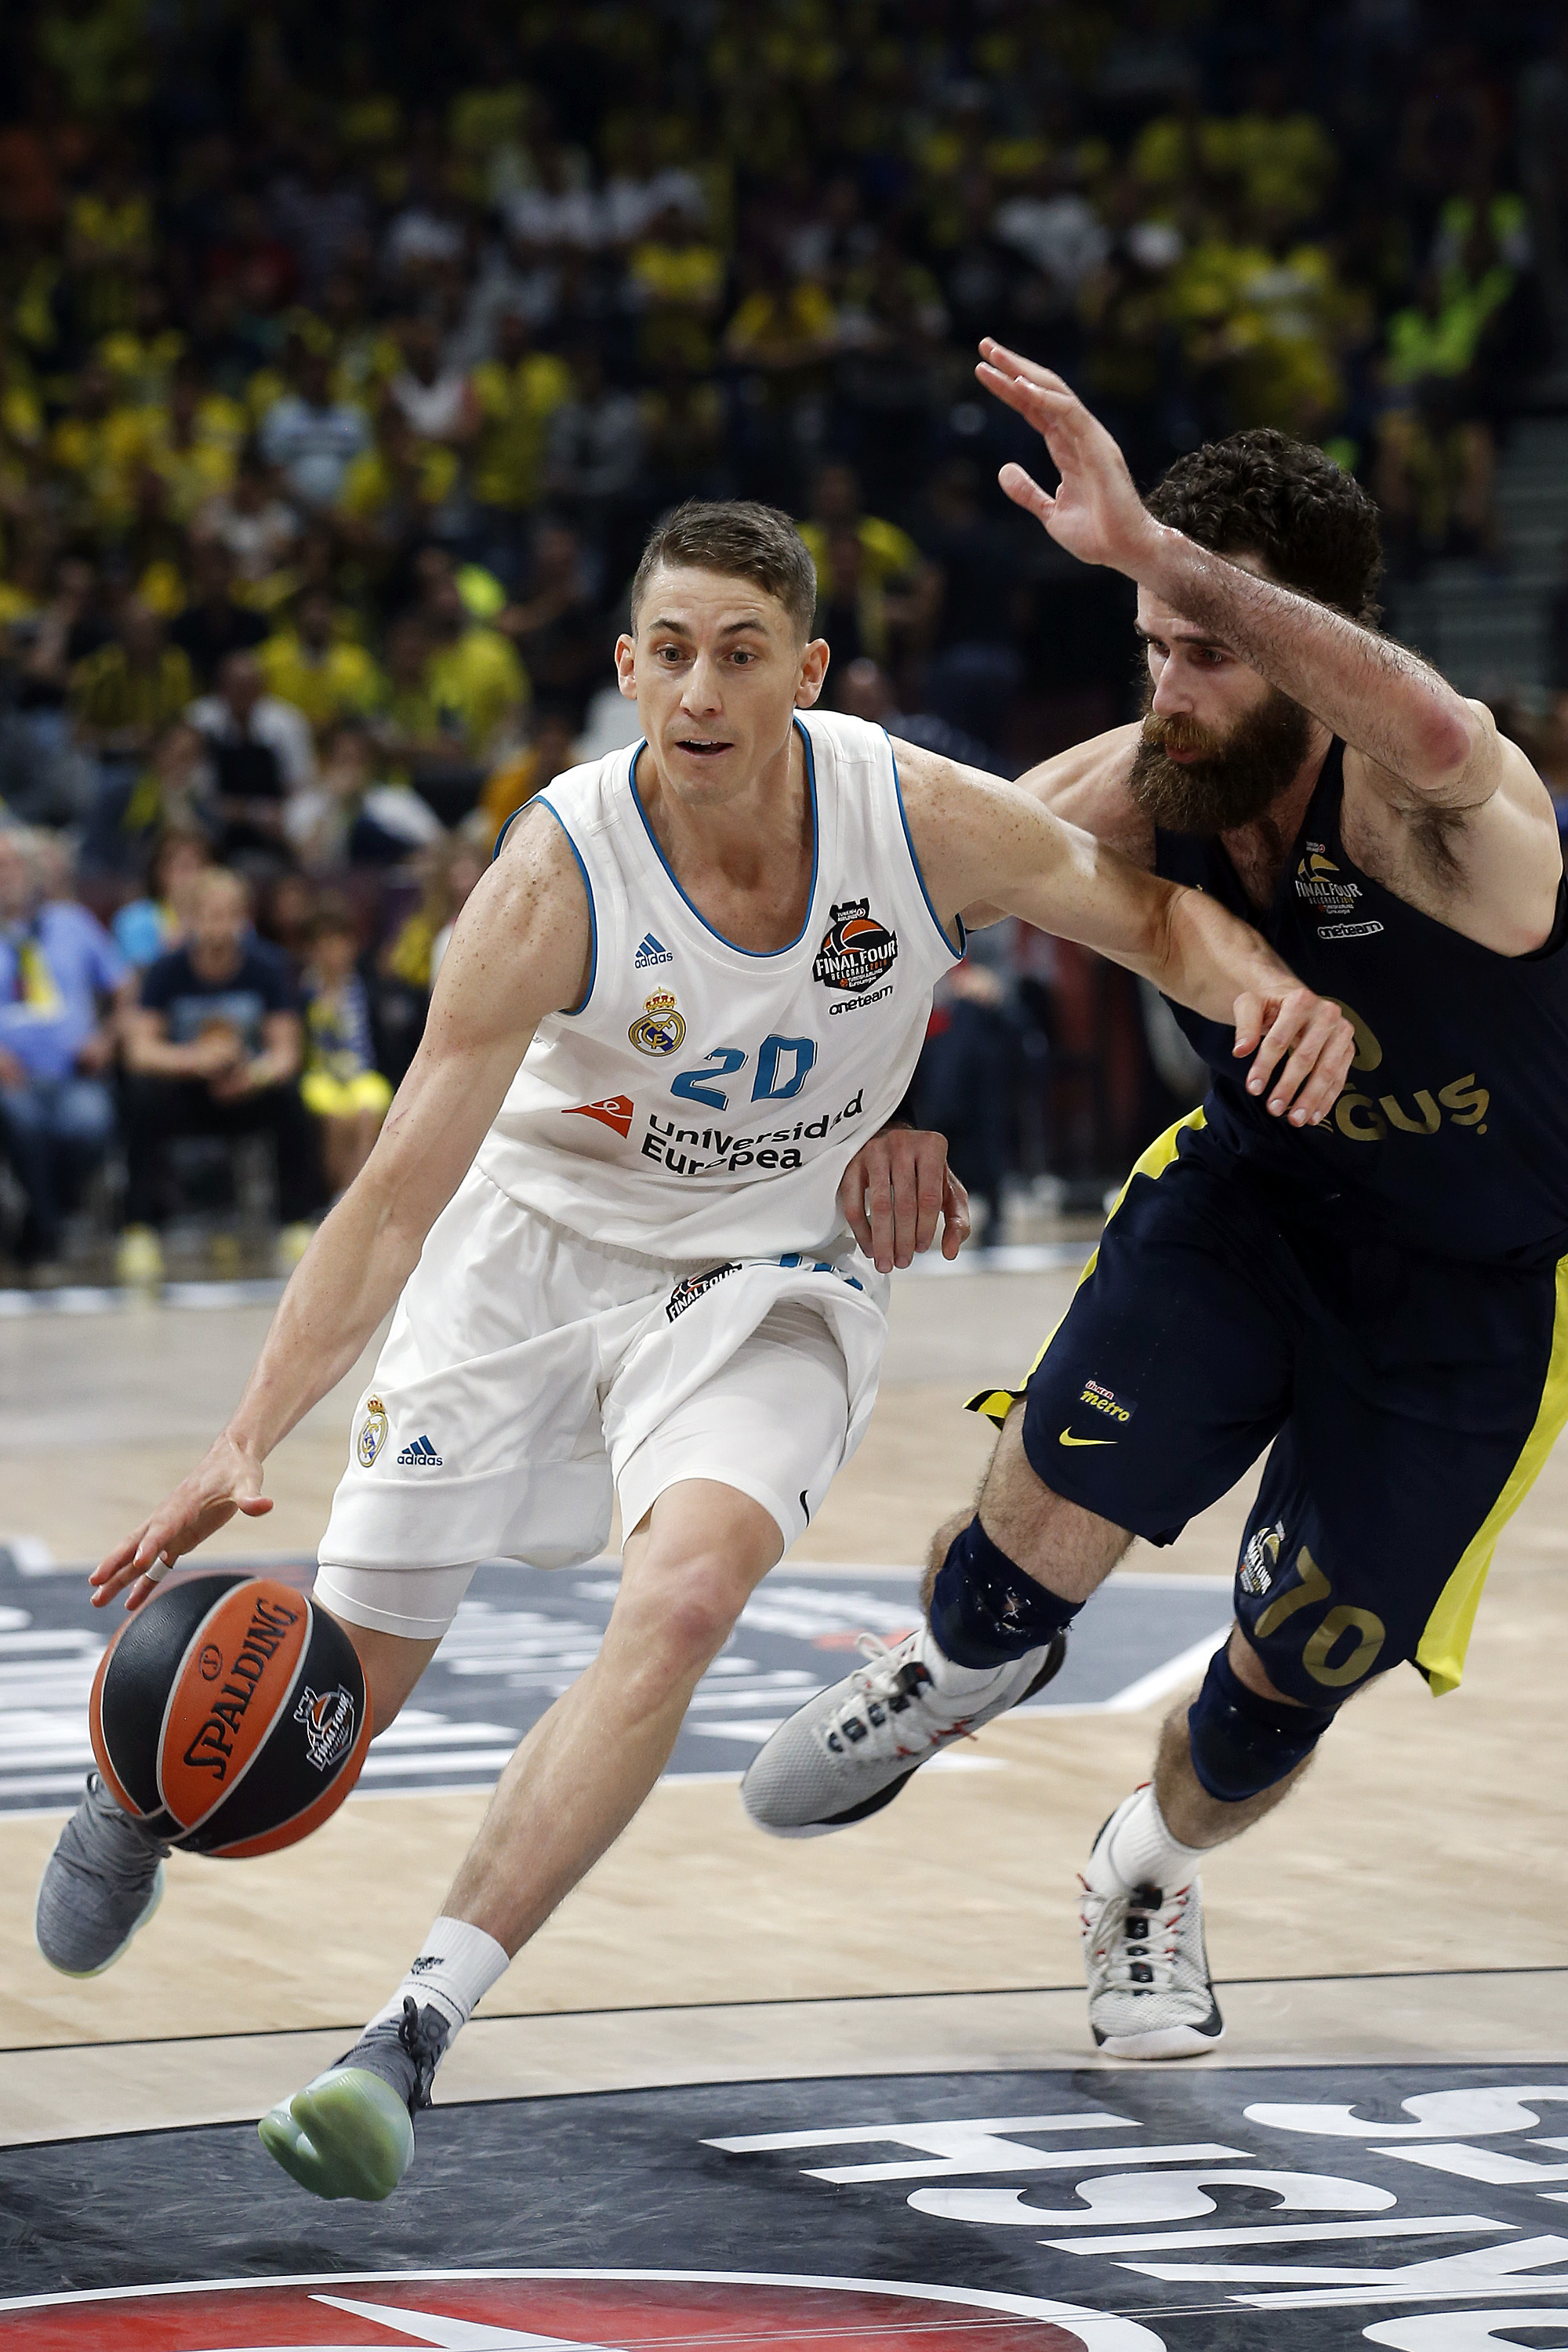 Real Madrid's Jaycee Carroll dribbles the ball as Fenerbahce's Luigi Datome blocks him during their Final Four Euroleague final basketball match between Real Madrid and Fenerbahce in Belgrade, Serbia, Sunday, May 20, 2018. (AP Photo/Darko Vojinovic)